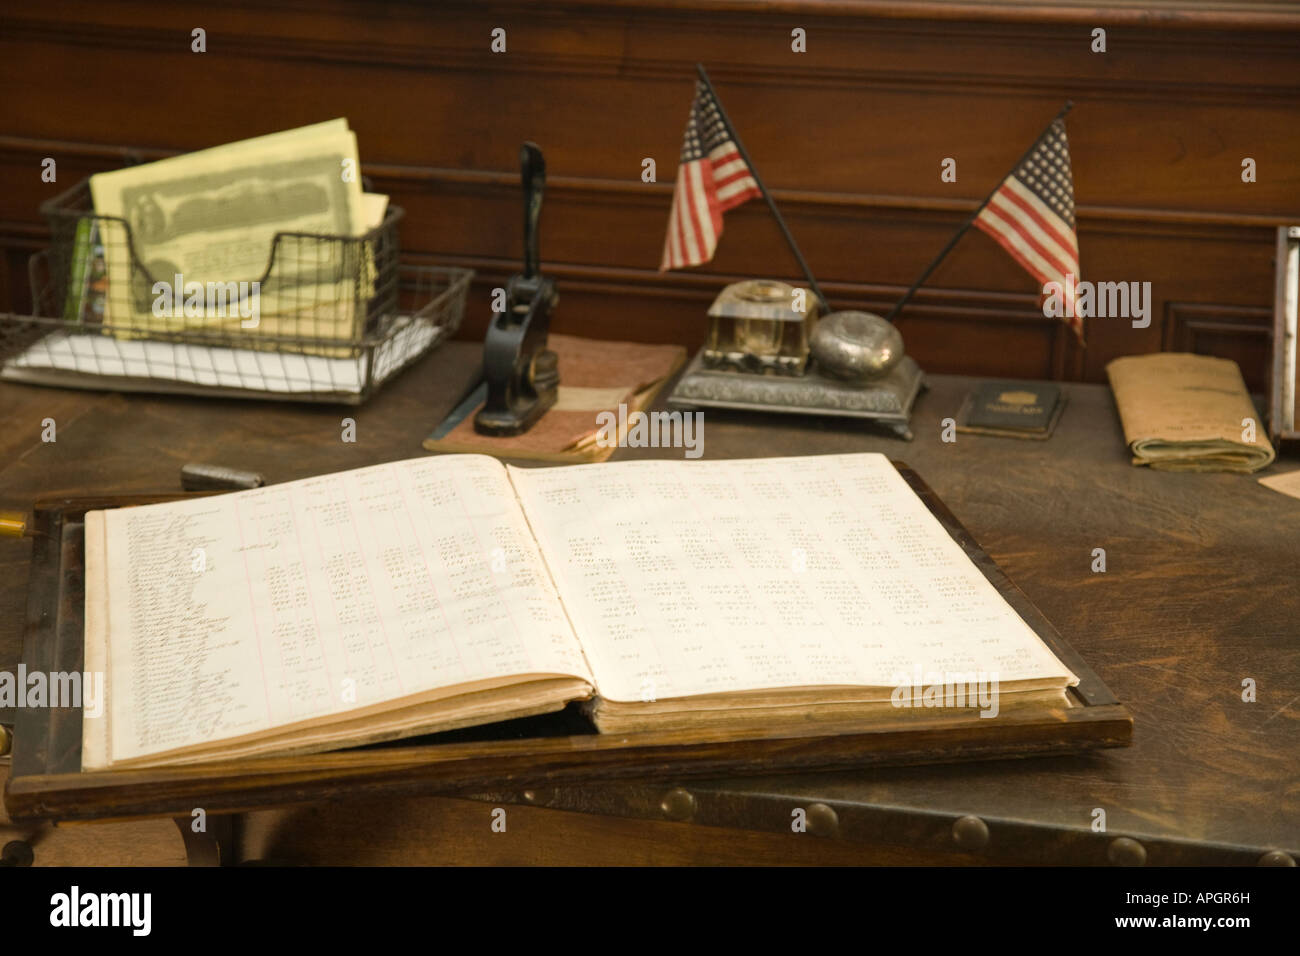 ILLINOIS Rockford Wooden desk with ledger rubber stamps and flags old fashioned office in historic Midway Village - Stock Image